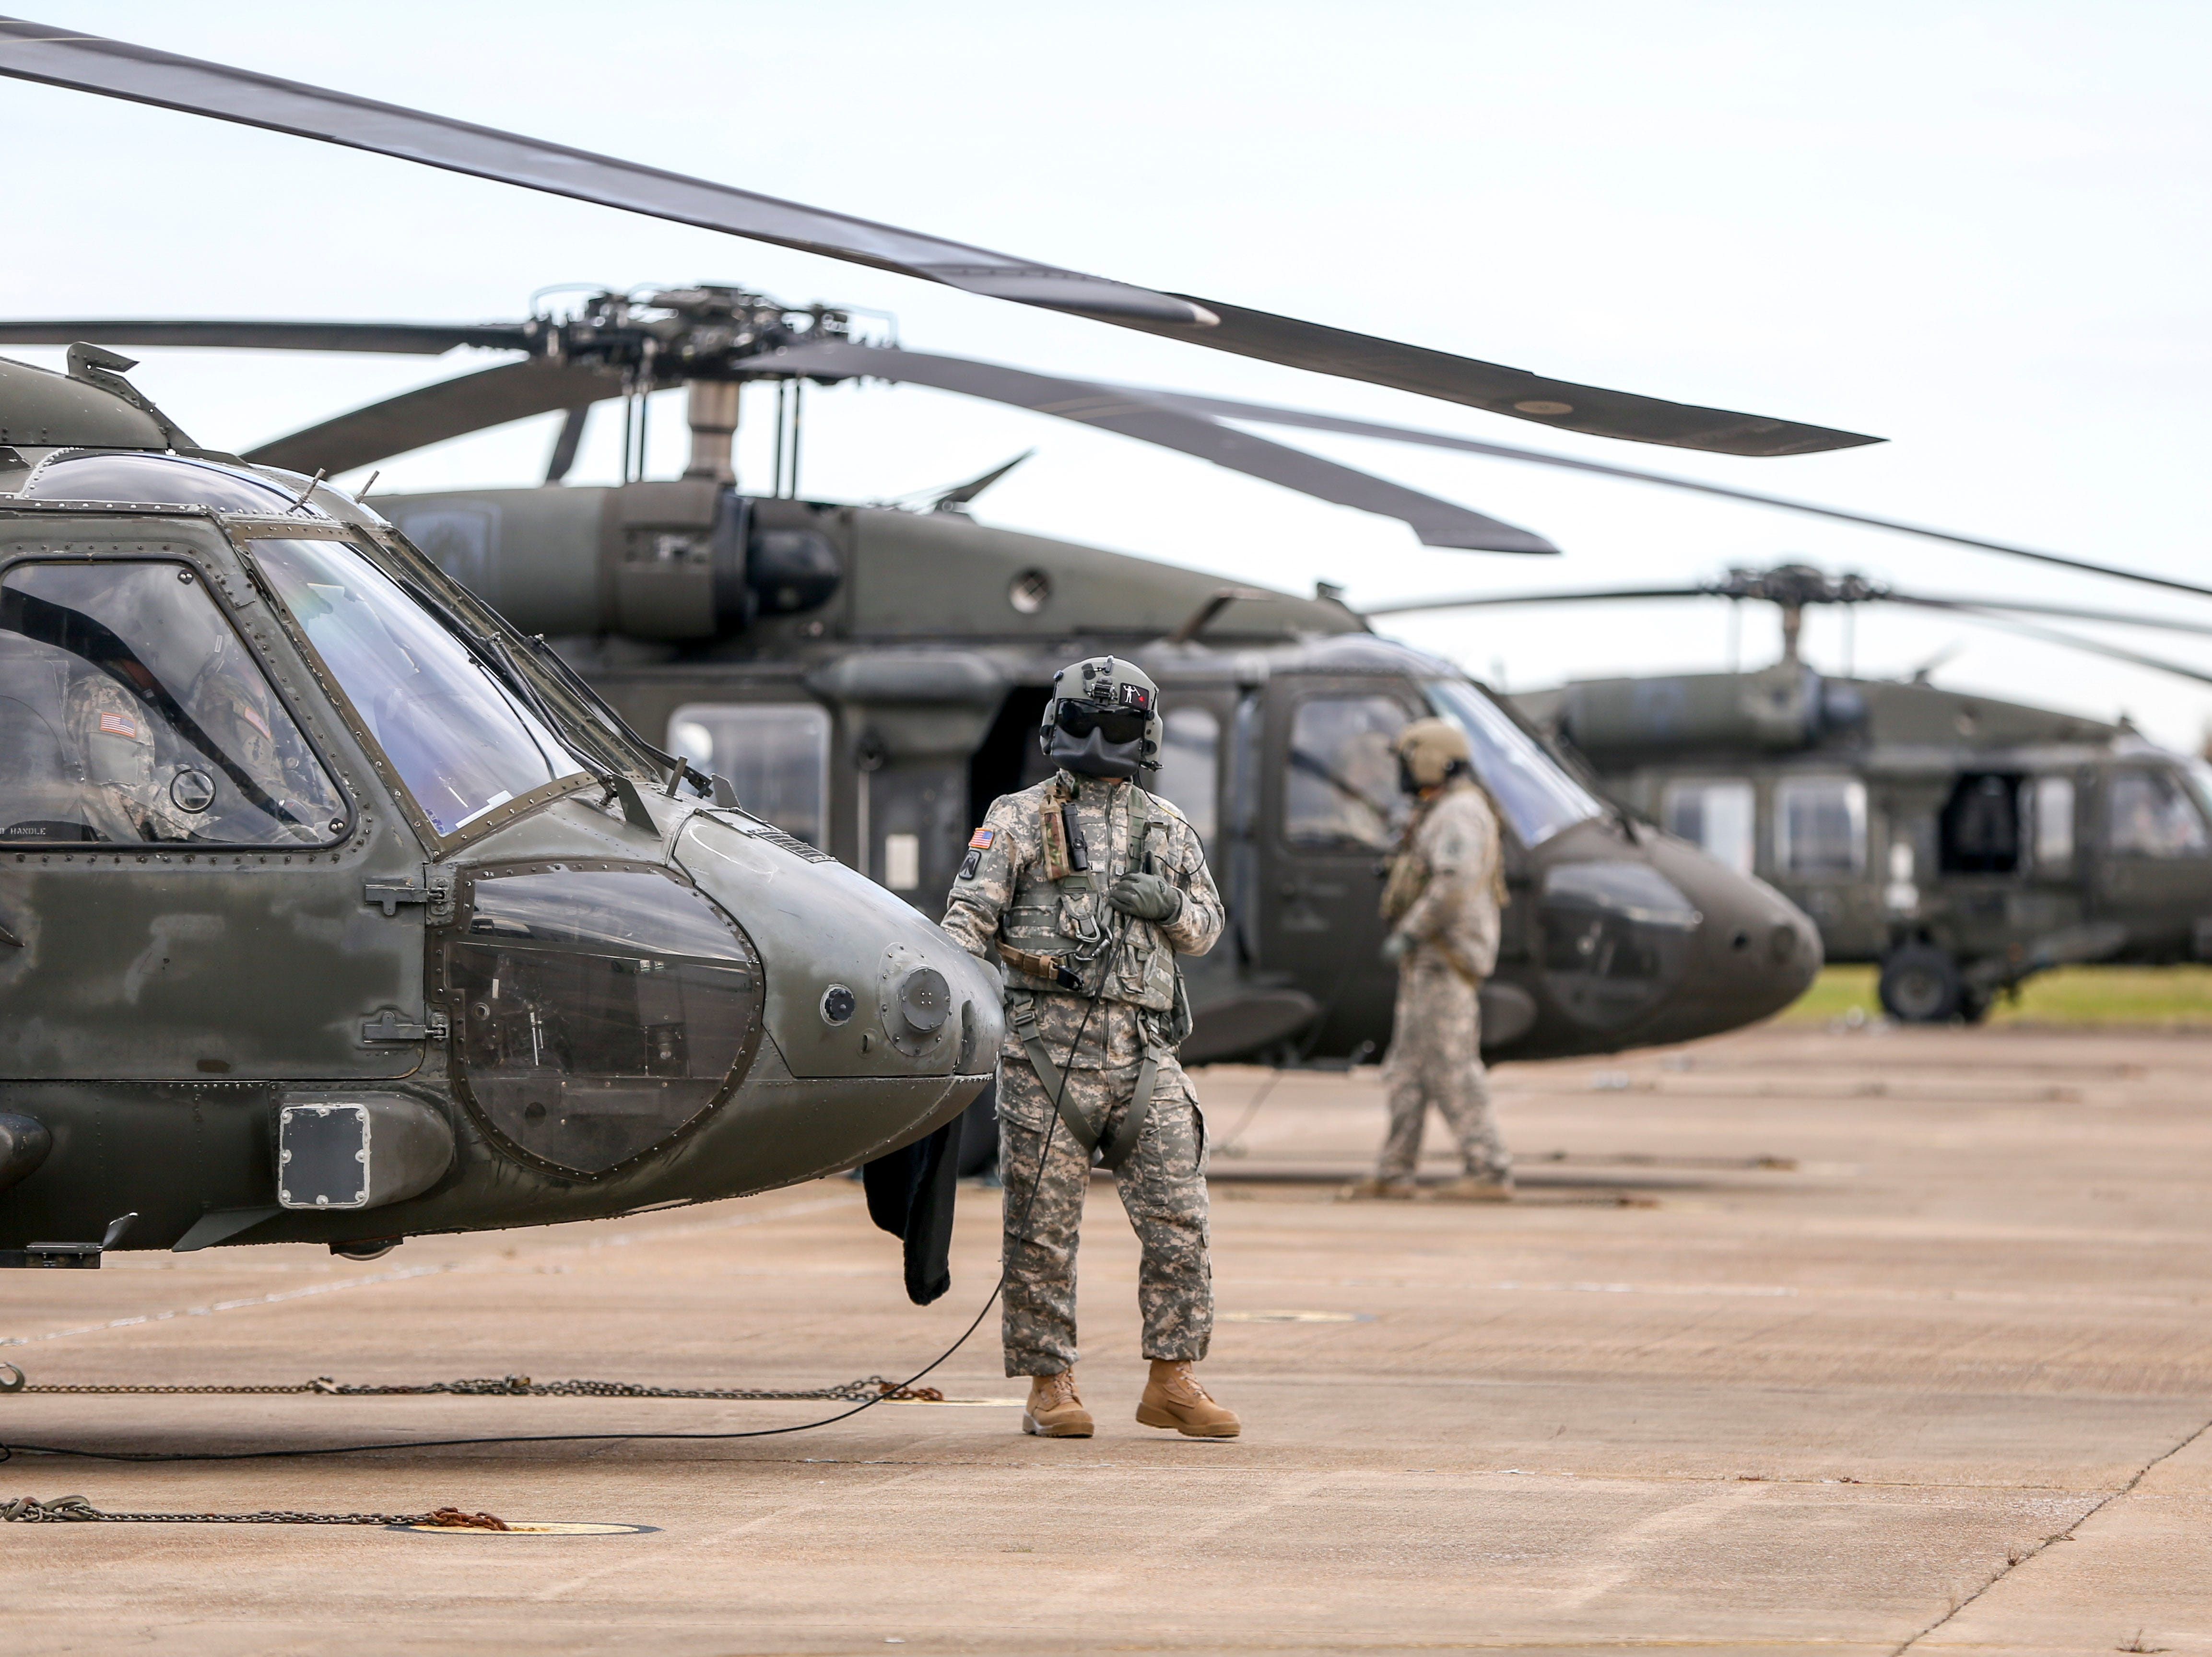 National Guardsmen prepare their Black Hawk helicopters for flight during the annual Bosslift event put on by Employer Support of the Guard and Reserve (ESGR) and the Tennessee National Guard at Army Aviation Facility in Jackson, Tenn., on Thursday, Nov. 8, 2018.